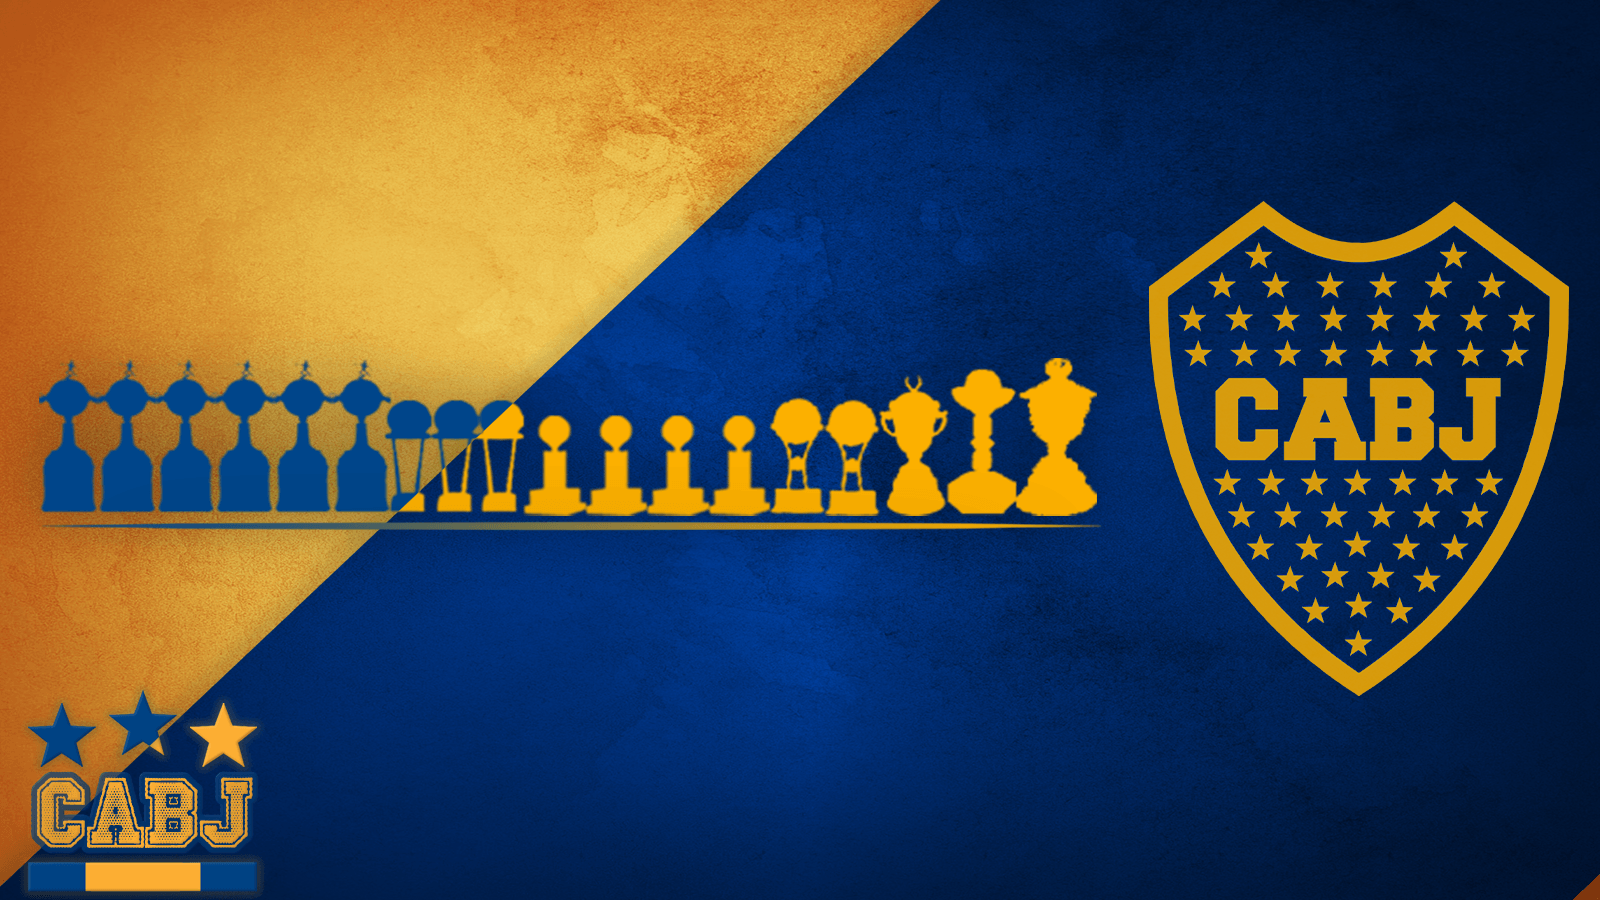 Wallpaper Boca Juniors by CaballoLoko00 on DeviantArt